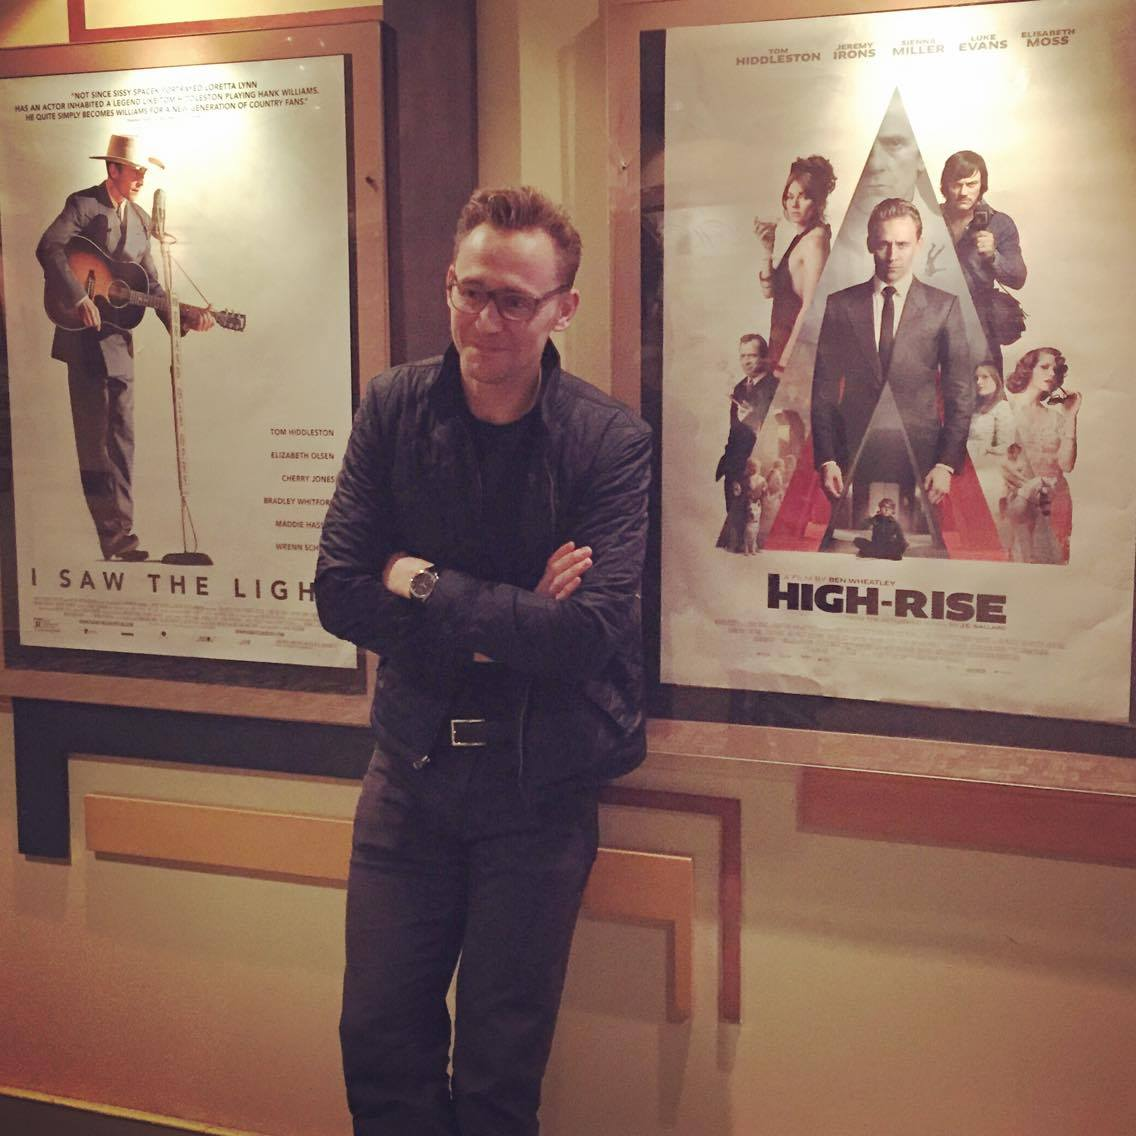 Look who stopped by last night! The one and only @twhiddleston! https://t.co/WRm6qg74z3